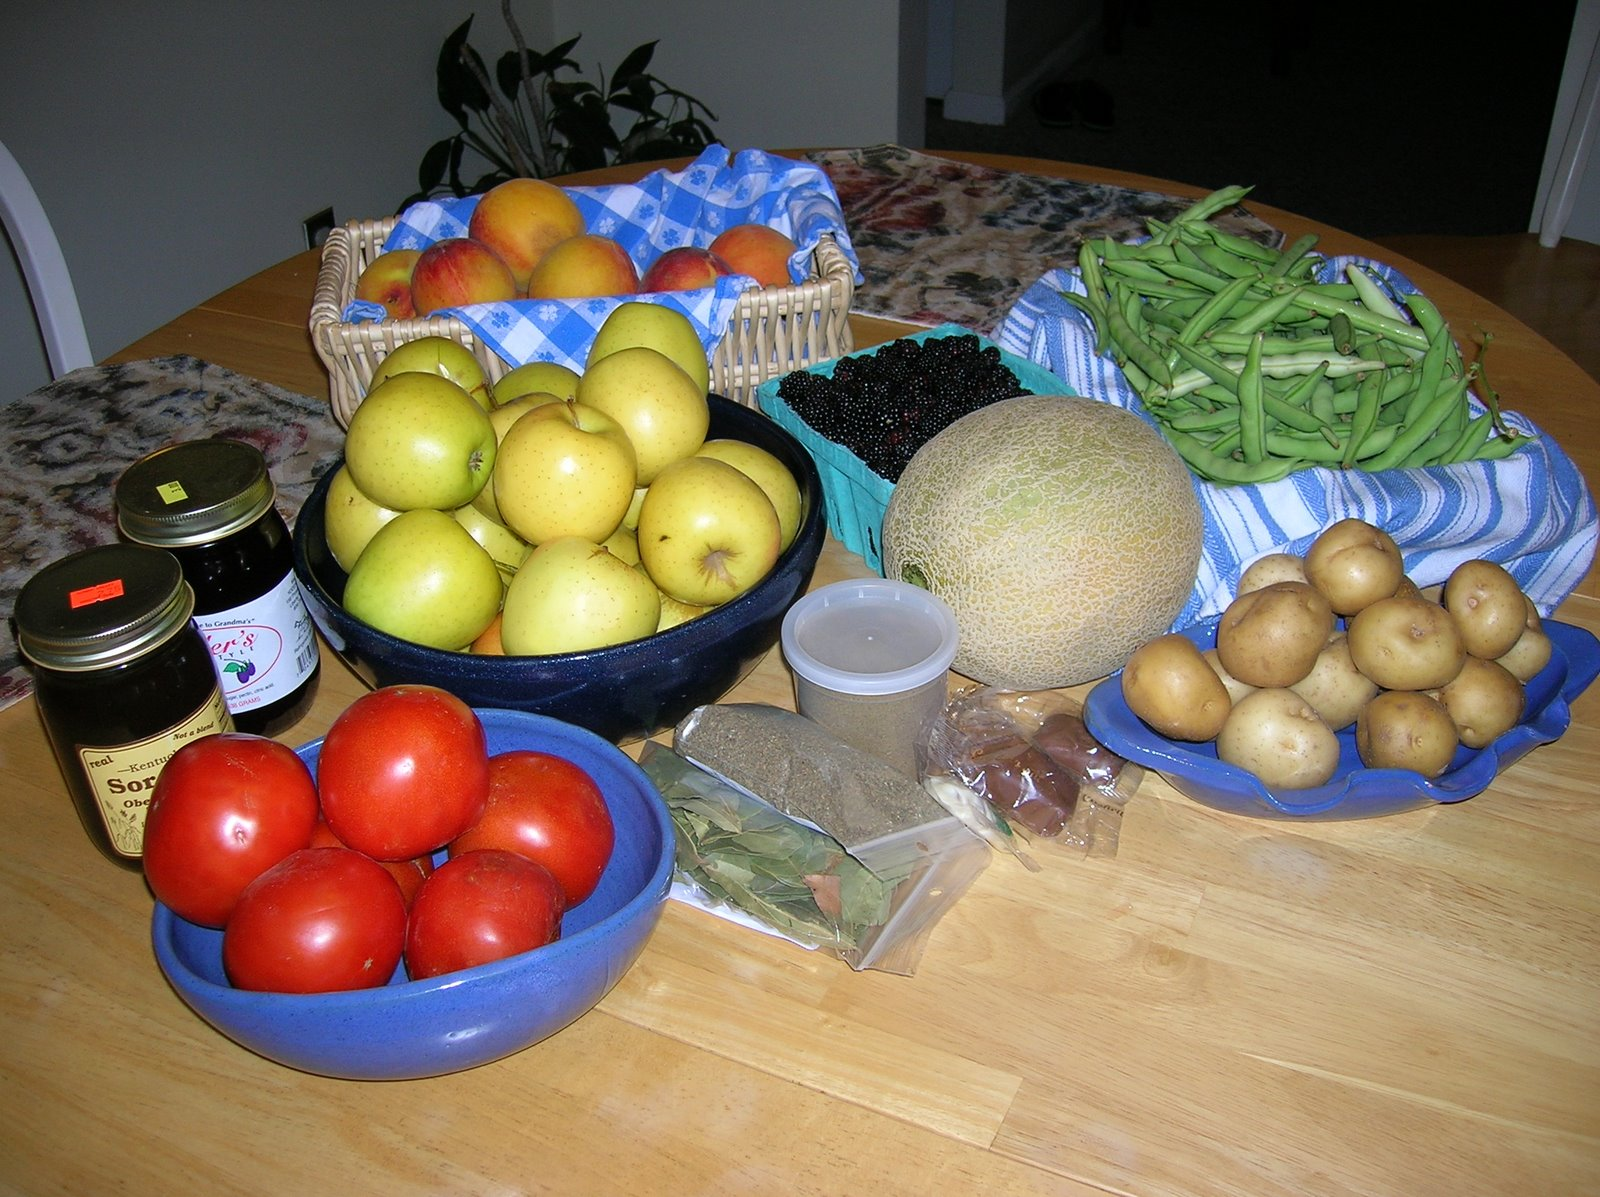 WHAT'S IN THE FOODS YOU EAT, FOOD SAFETY AND GUIDELINES